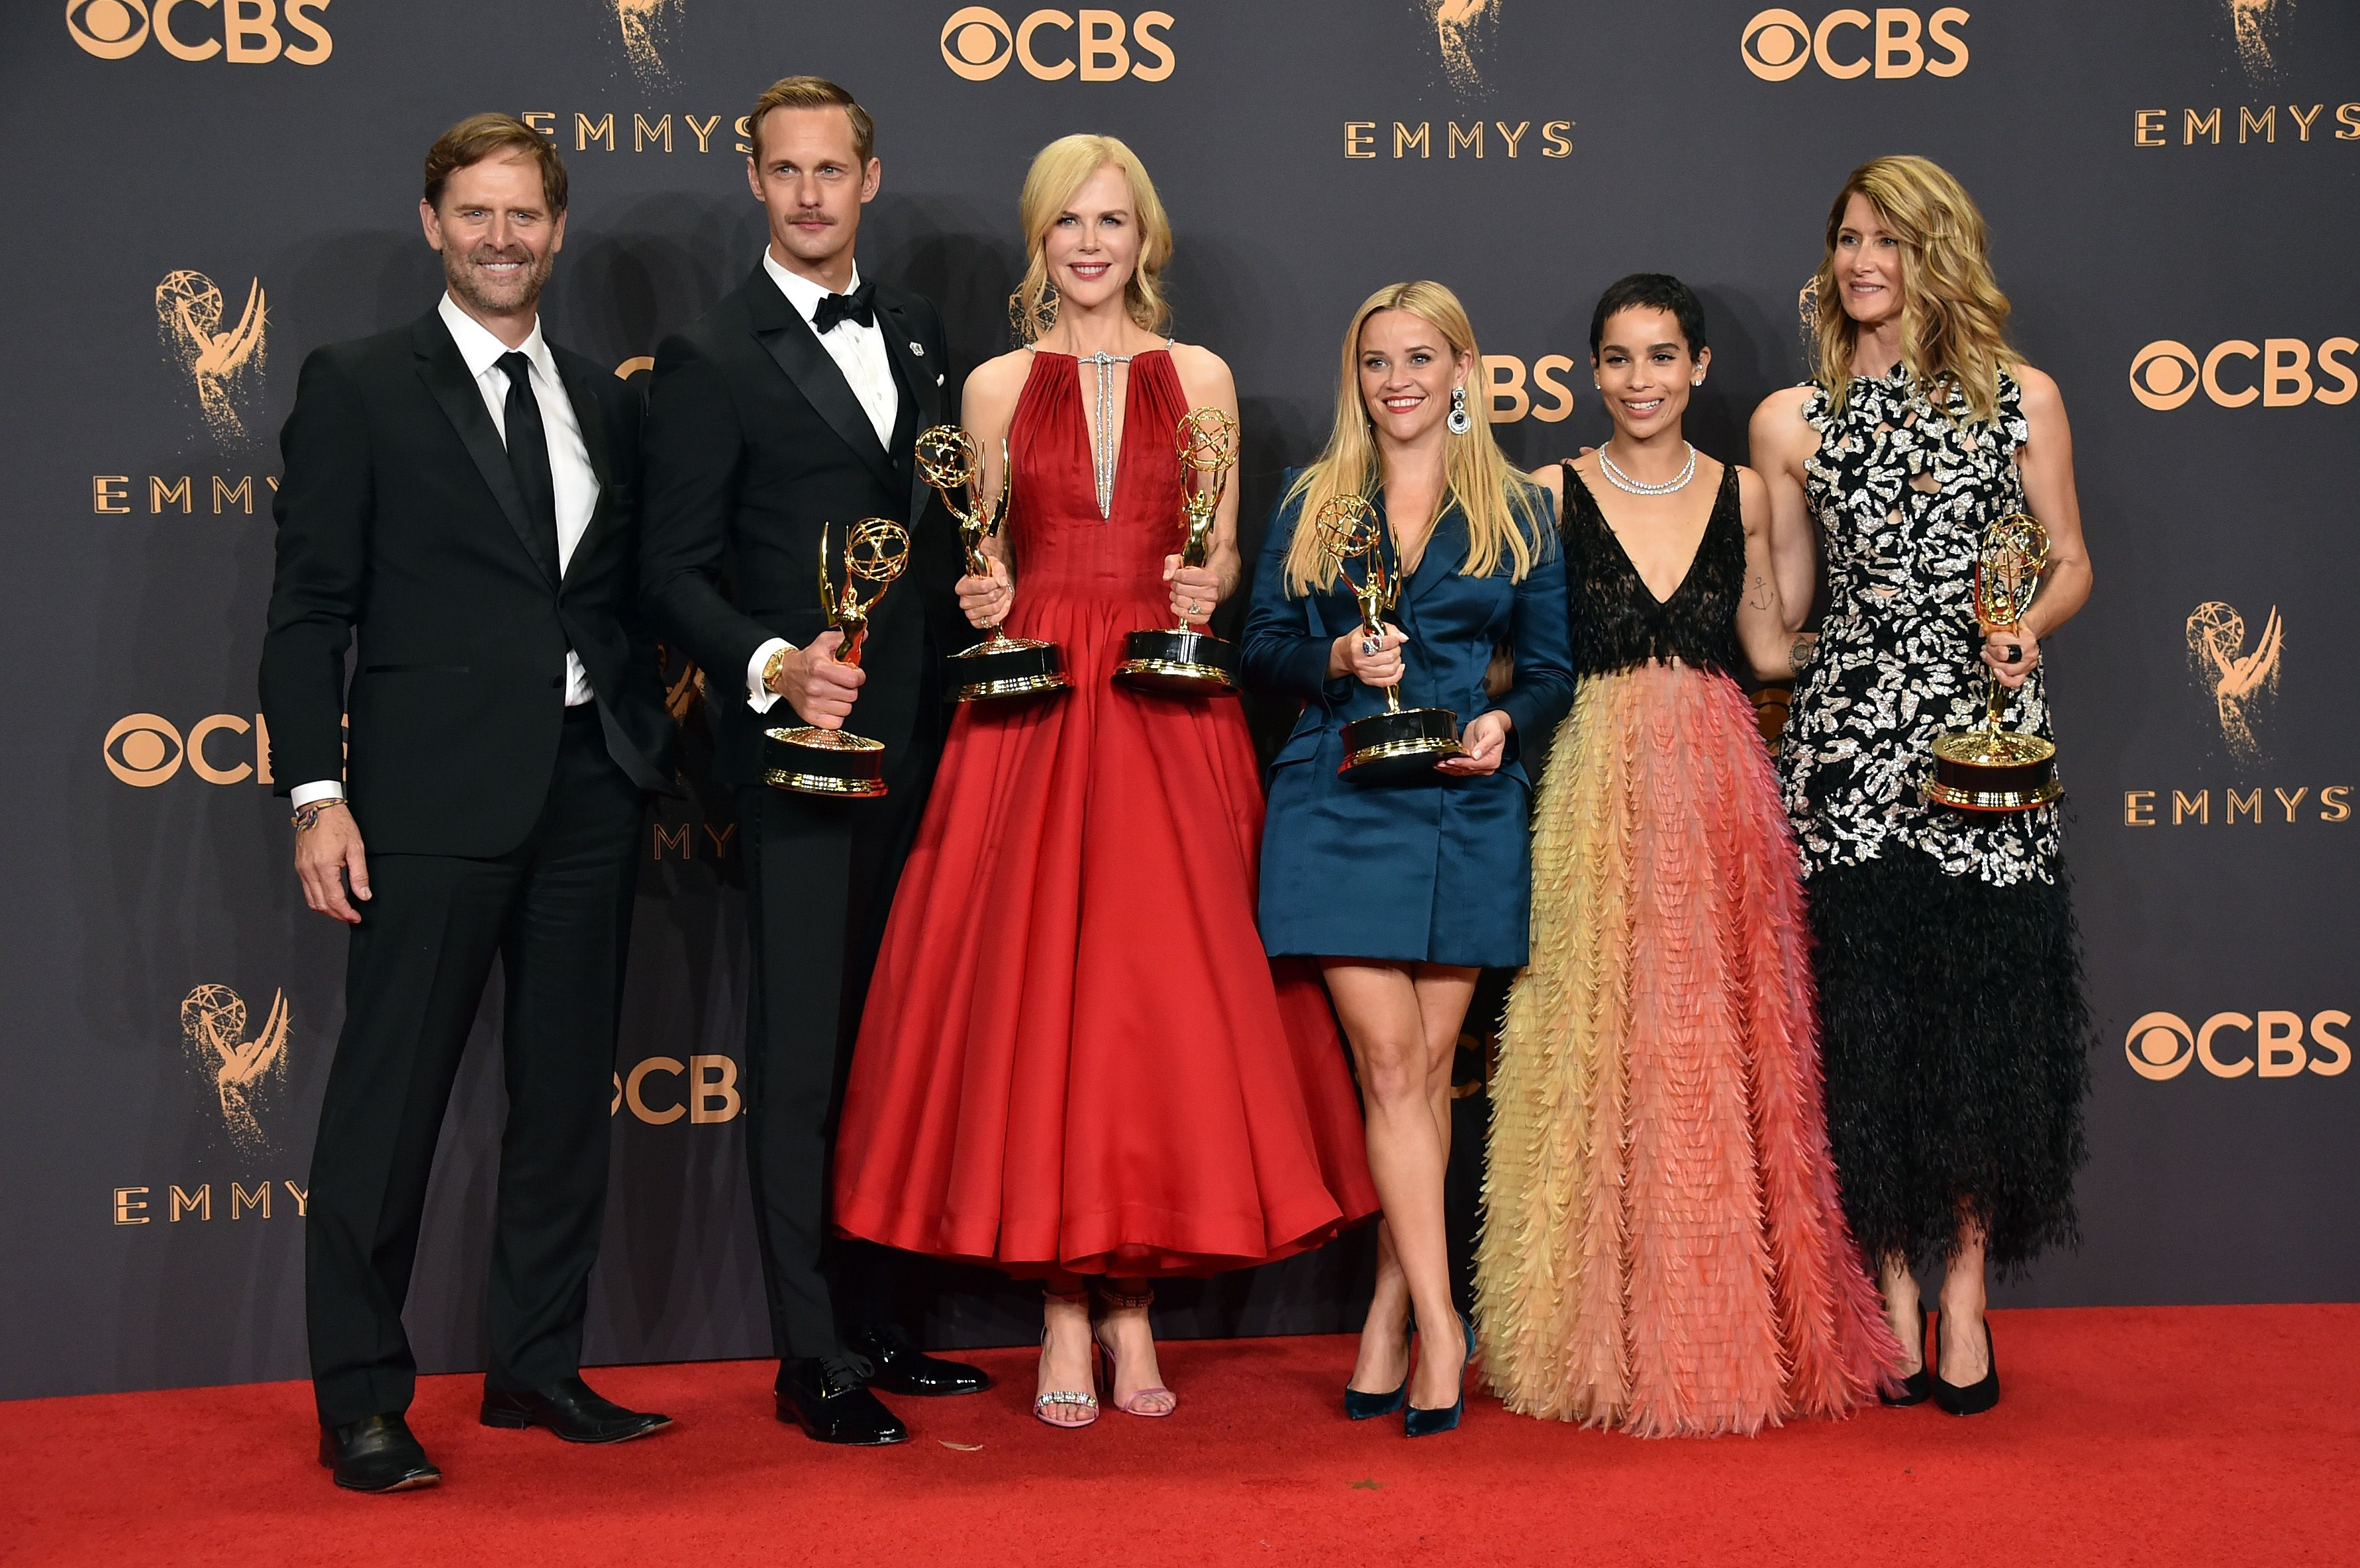 Liane Moriarty Reveals the Horrifying True Story Behind Big Little Lies